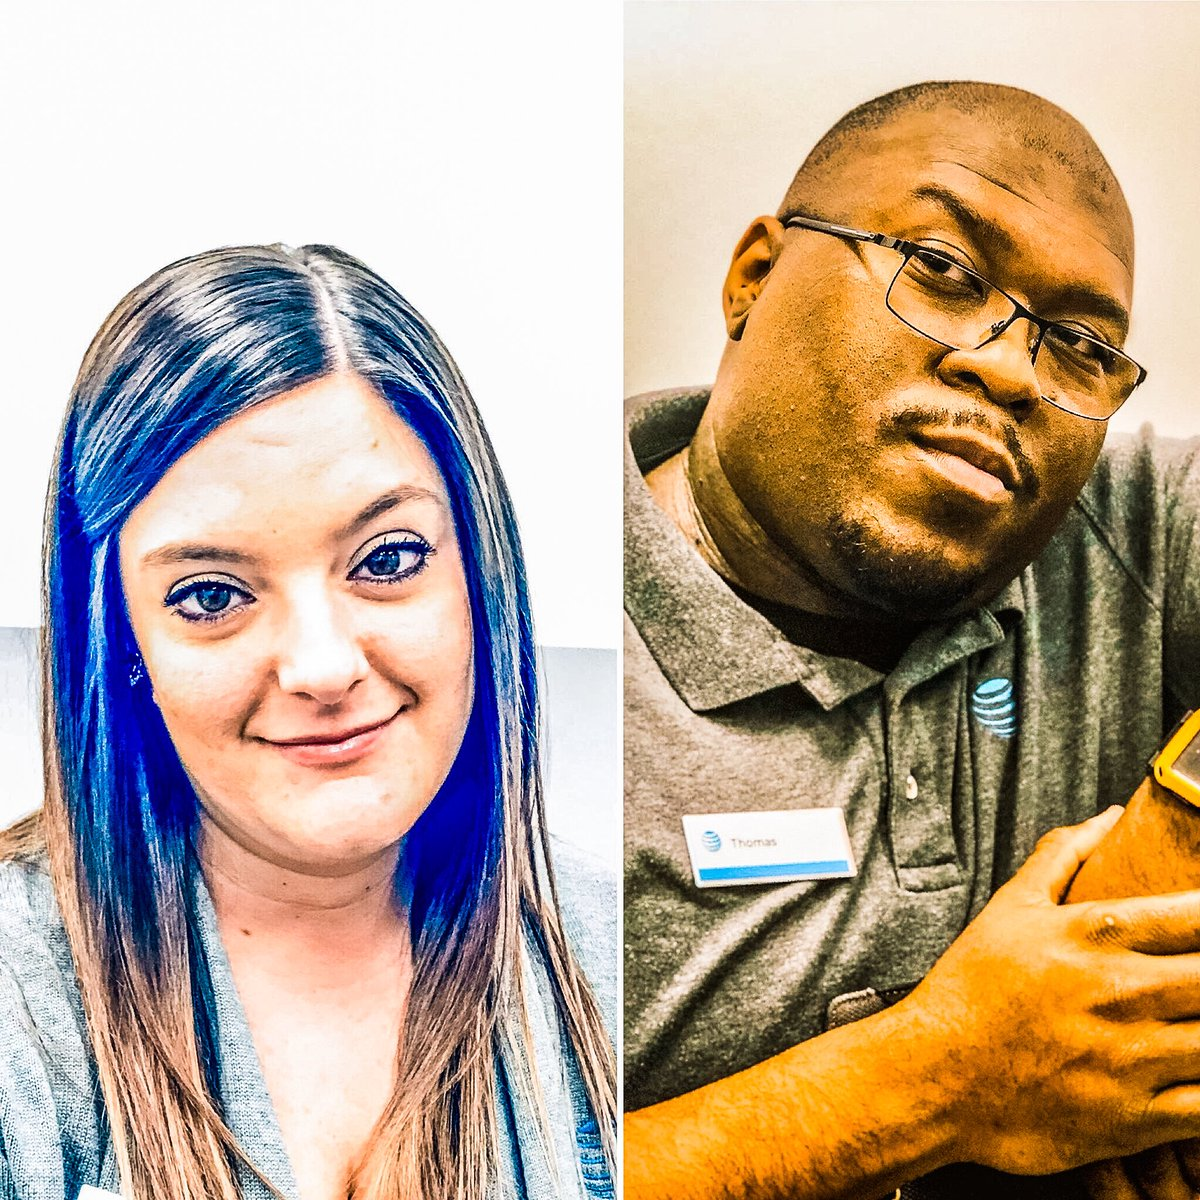 @A_Town817 @DaleB1 Infamous Faces of A-Town as Thomas scores a DTV NOW and Brianna with her 2nd Premium DTV today! #dawgpound #ChampionsLeague